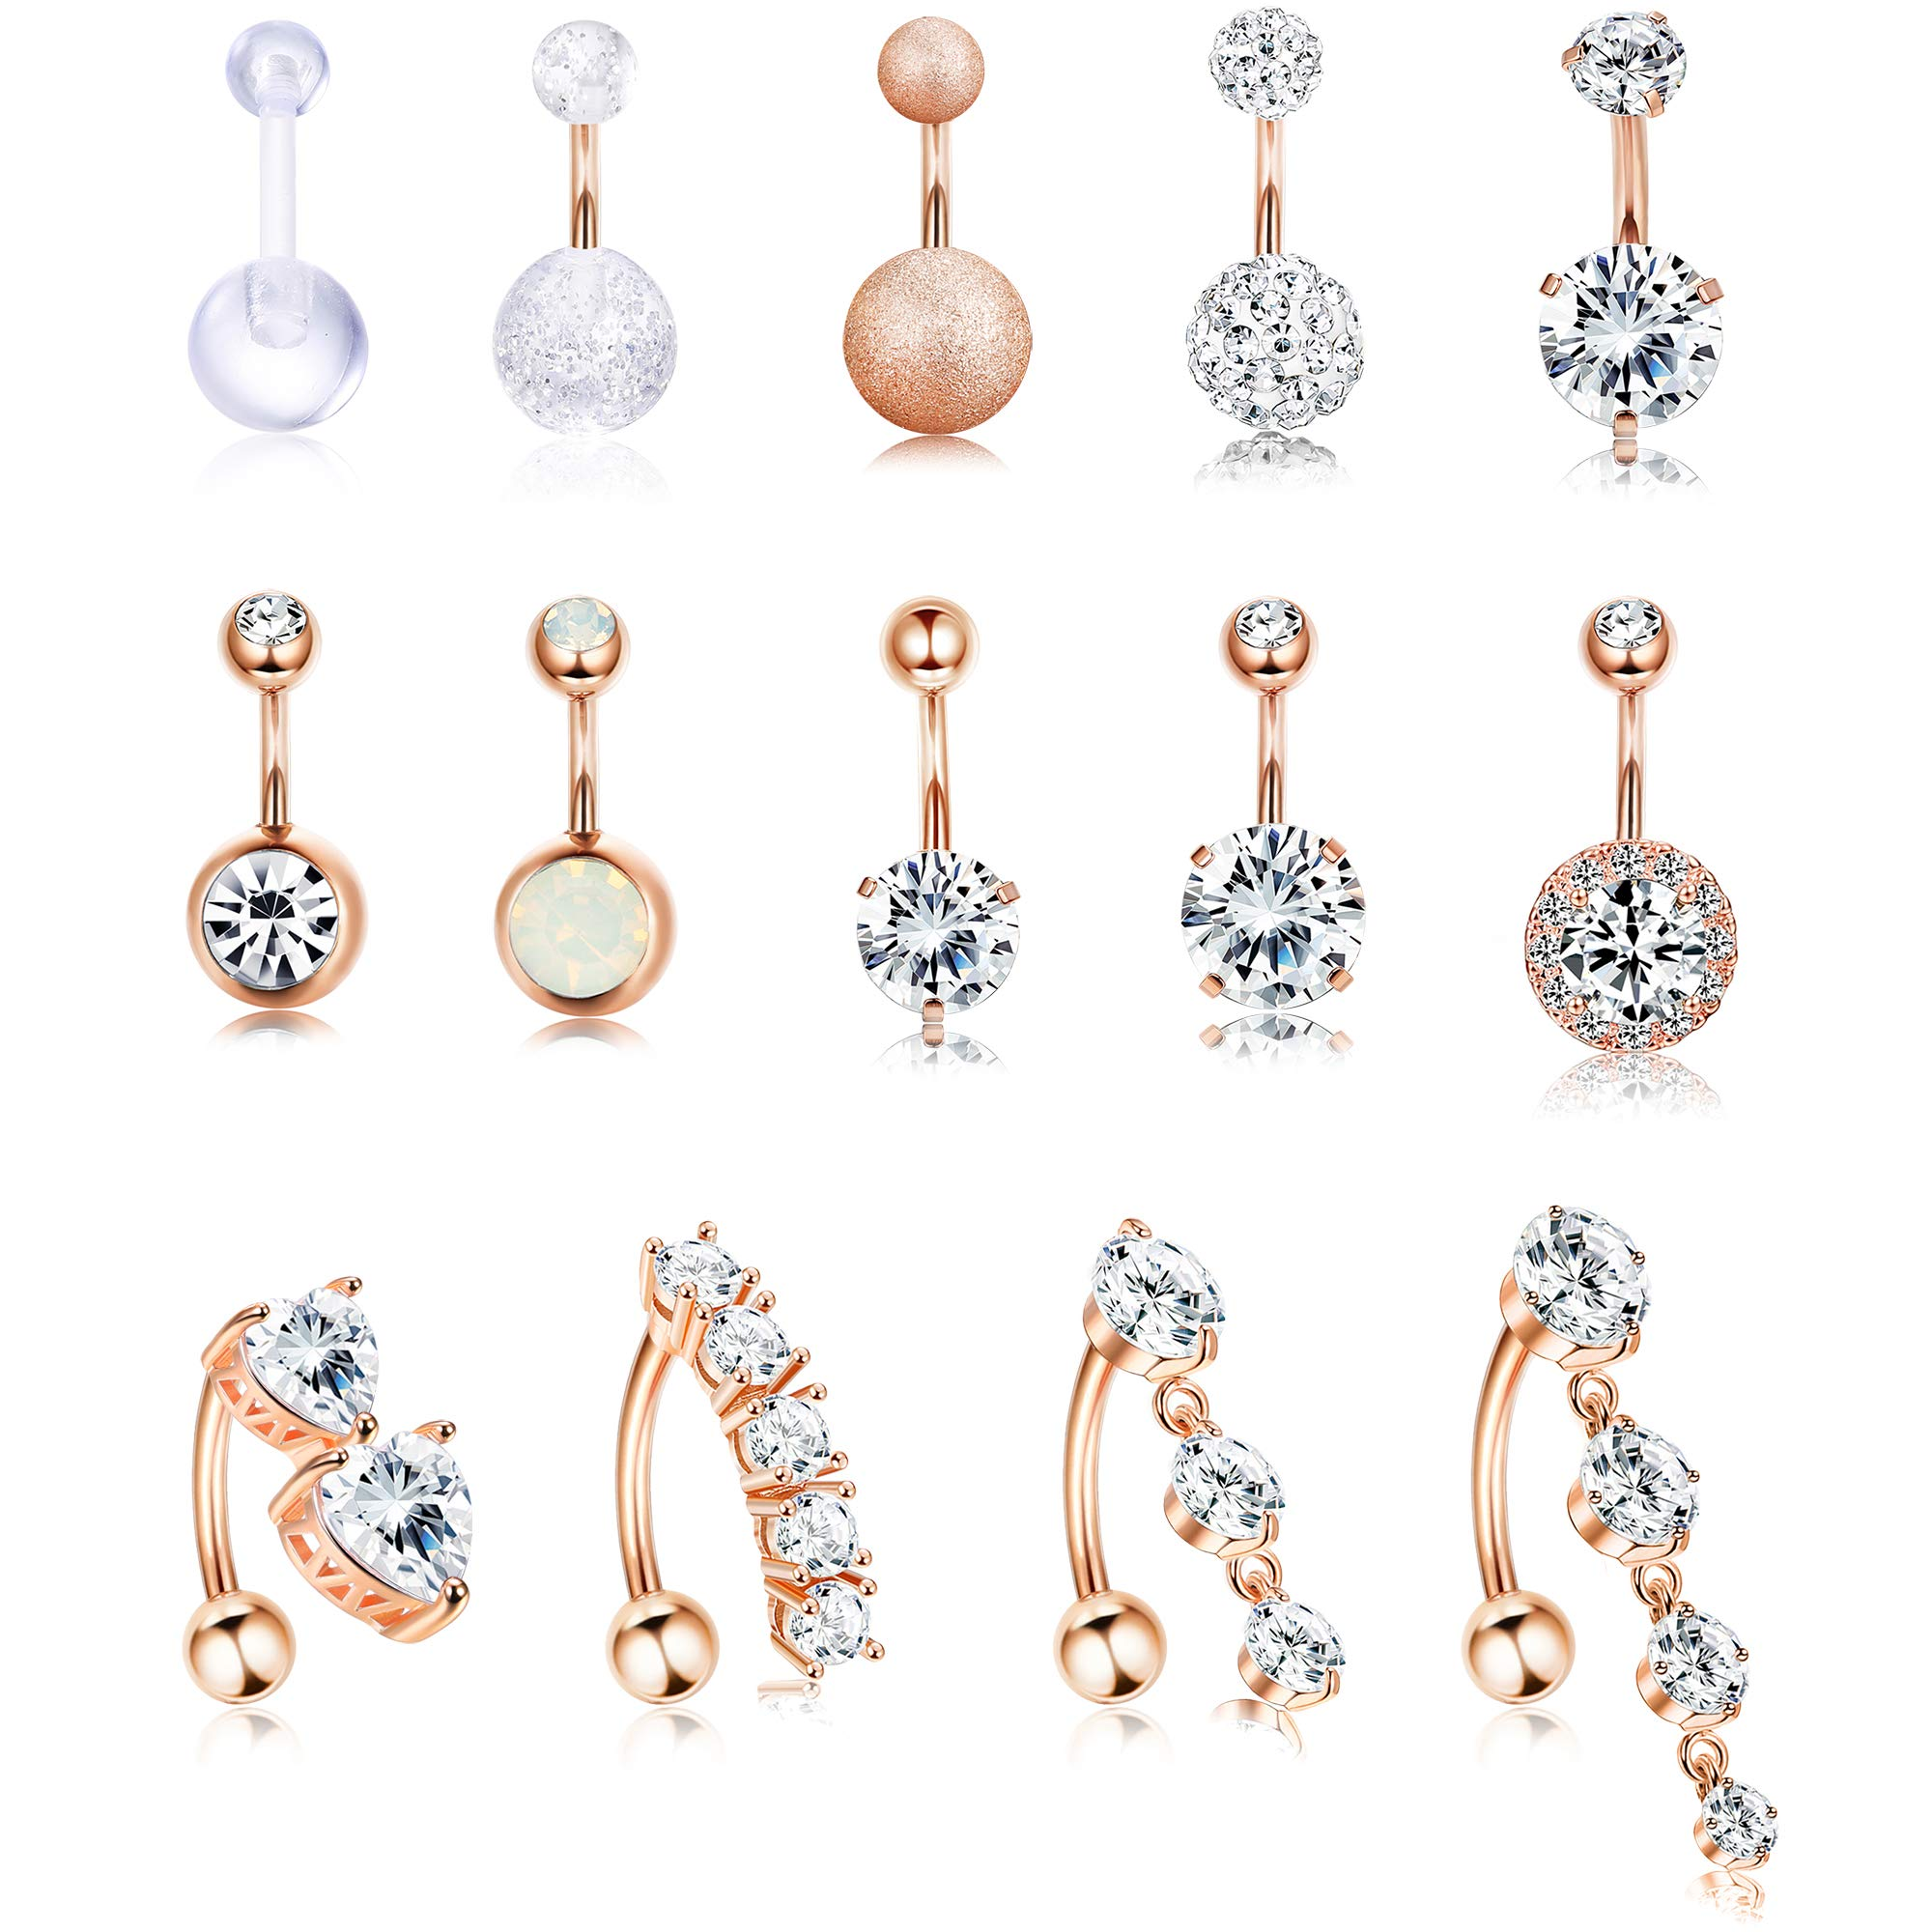 Jstyle 14Pcs Stainless Steel Belly Button Rings for Women Girls Reverse Navel Rings Curved Barbell CZ Body Piercing Jewelry 14G by Jstyle